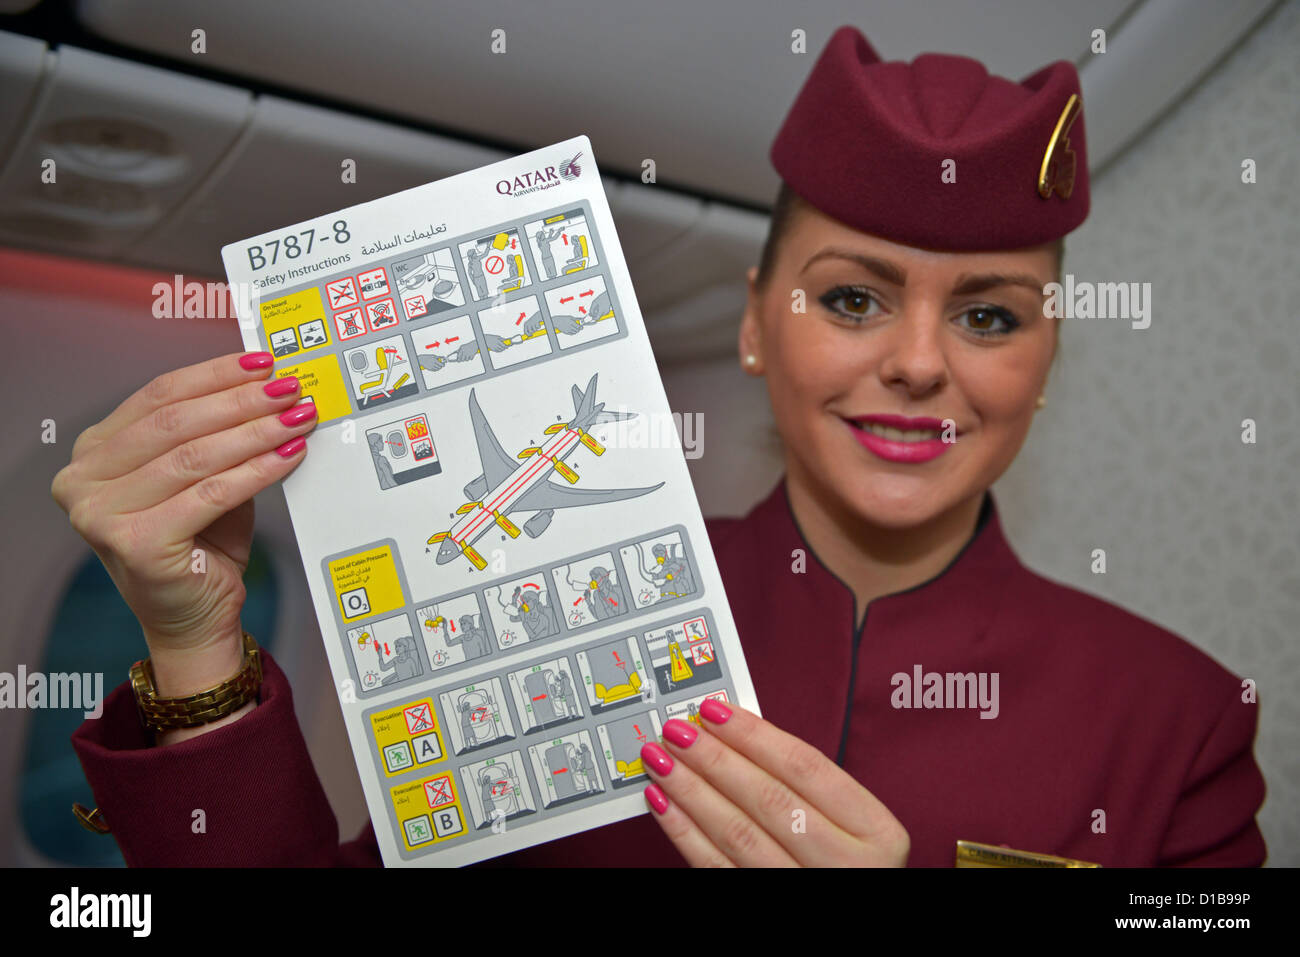 Qatar Dreamliner, Boeing 787, stewardess with Safety instructions for the Dreamliner - Stock Image